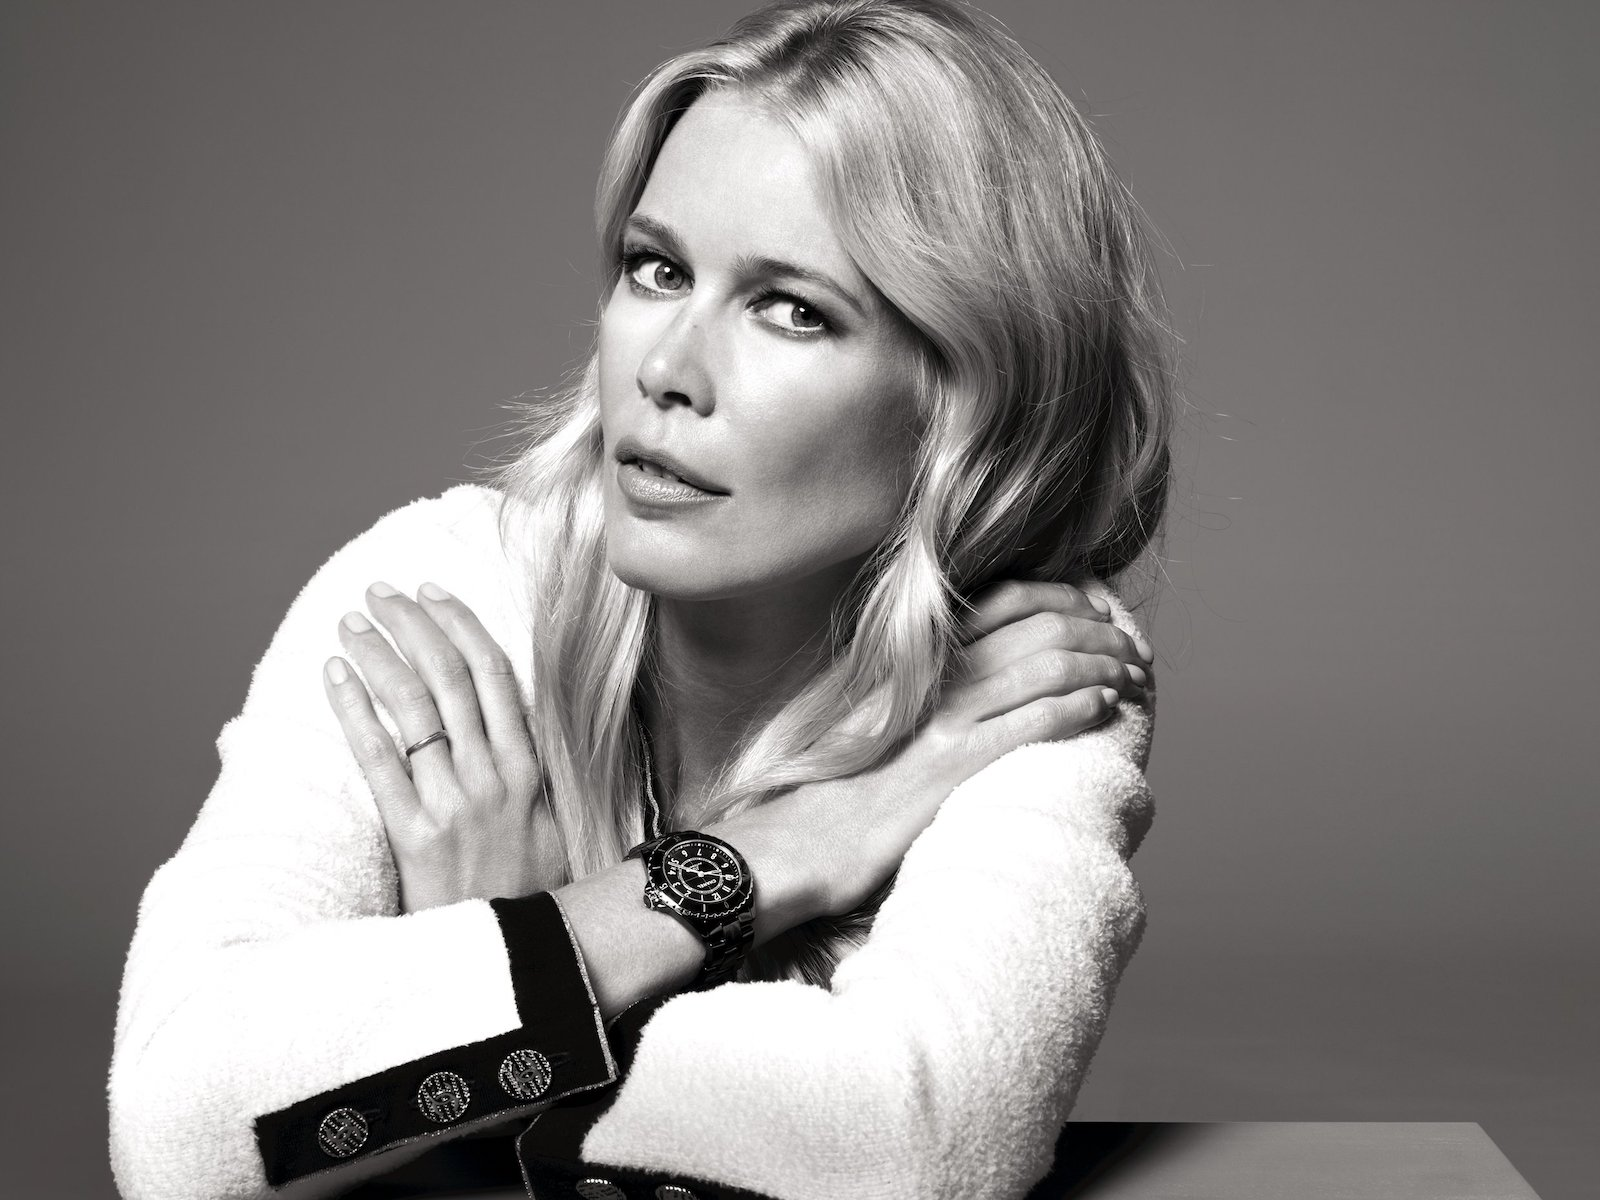 J12 It's all about seconds - Claudia Schiffer